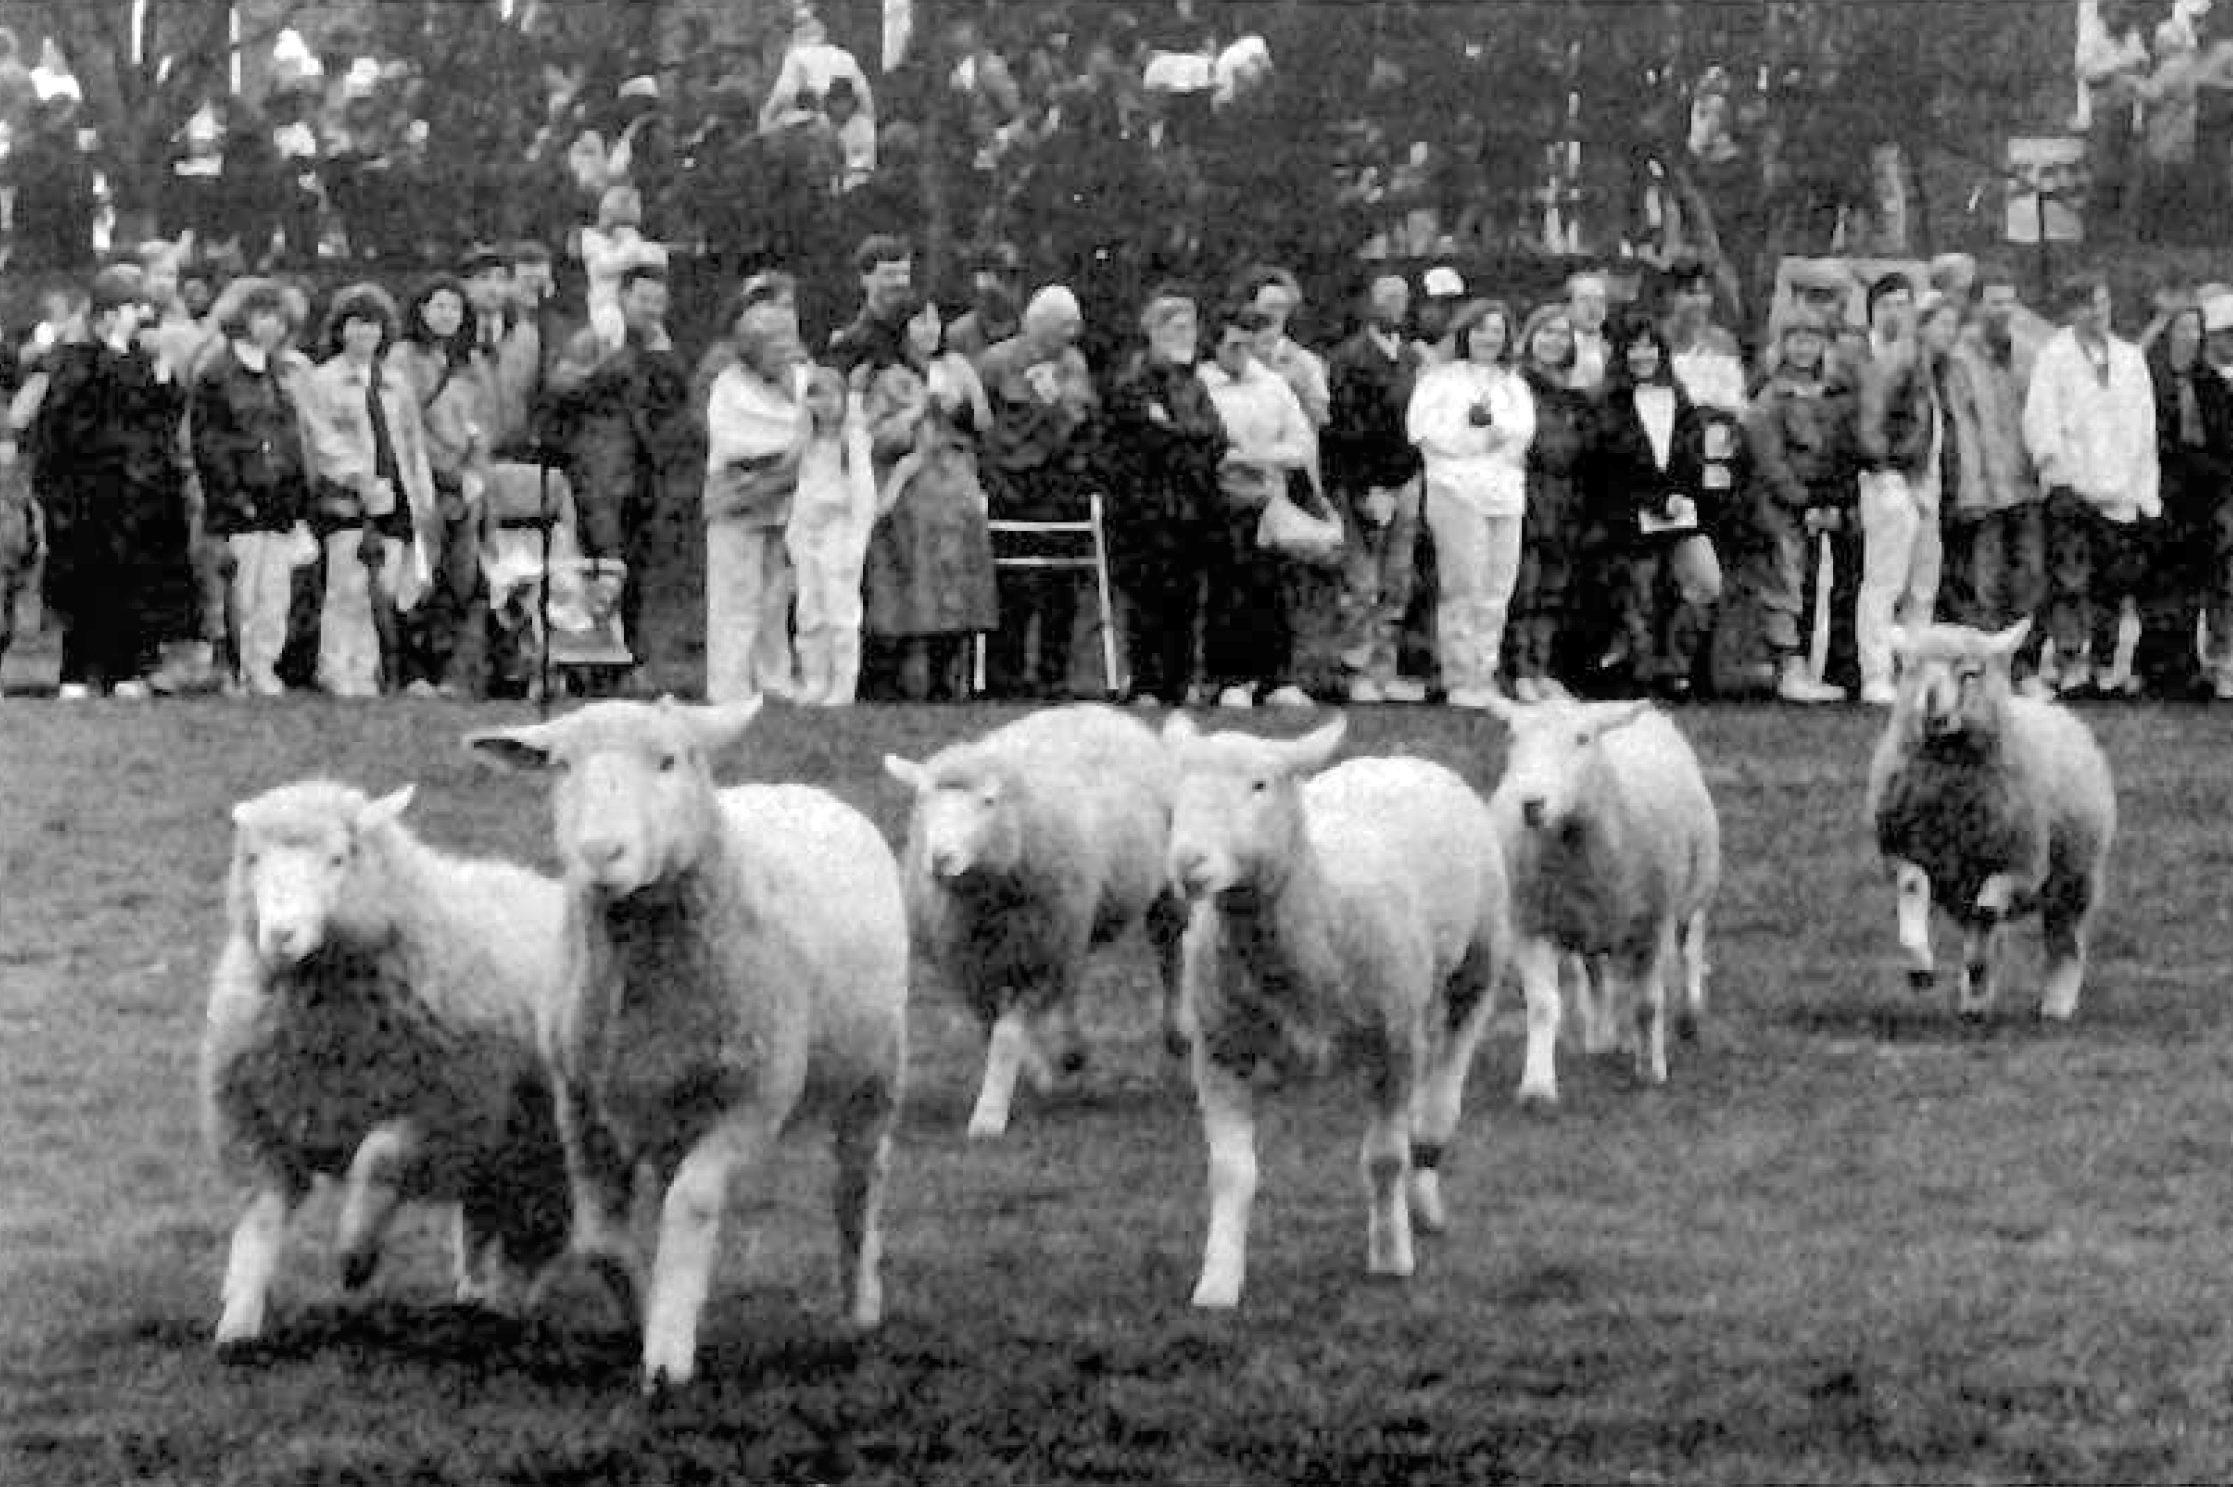 Sheep herding at Macalester in 1991. Photo Courtesy of Macalester Archives.